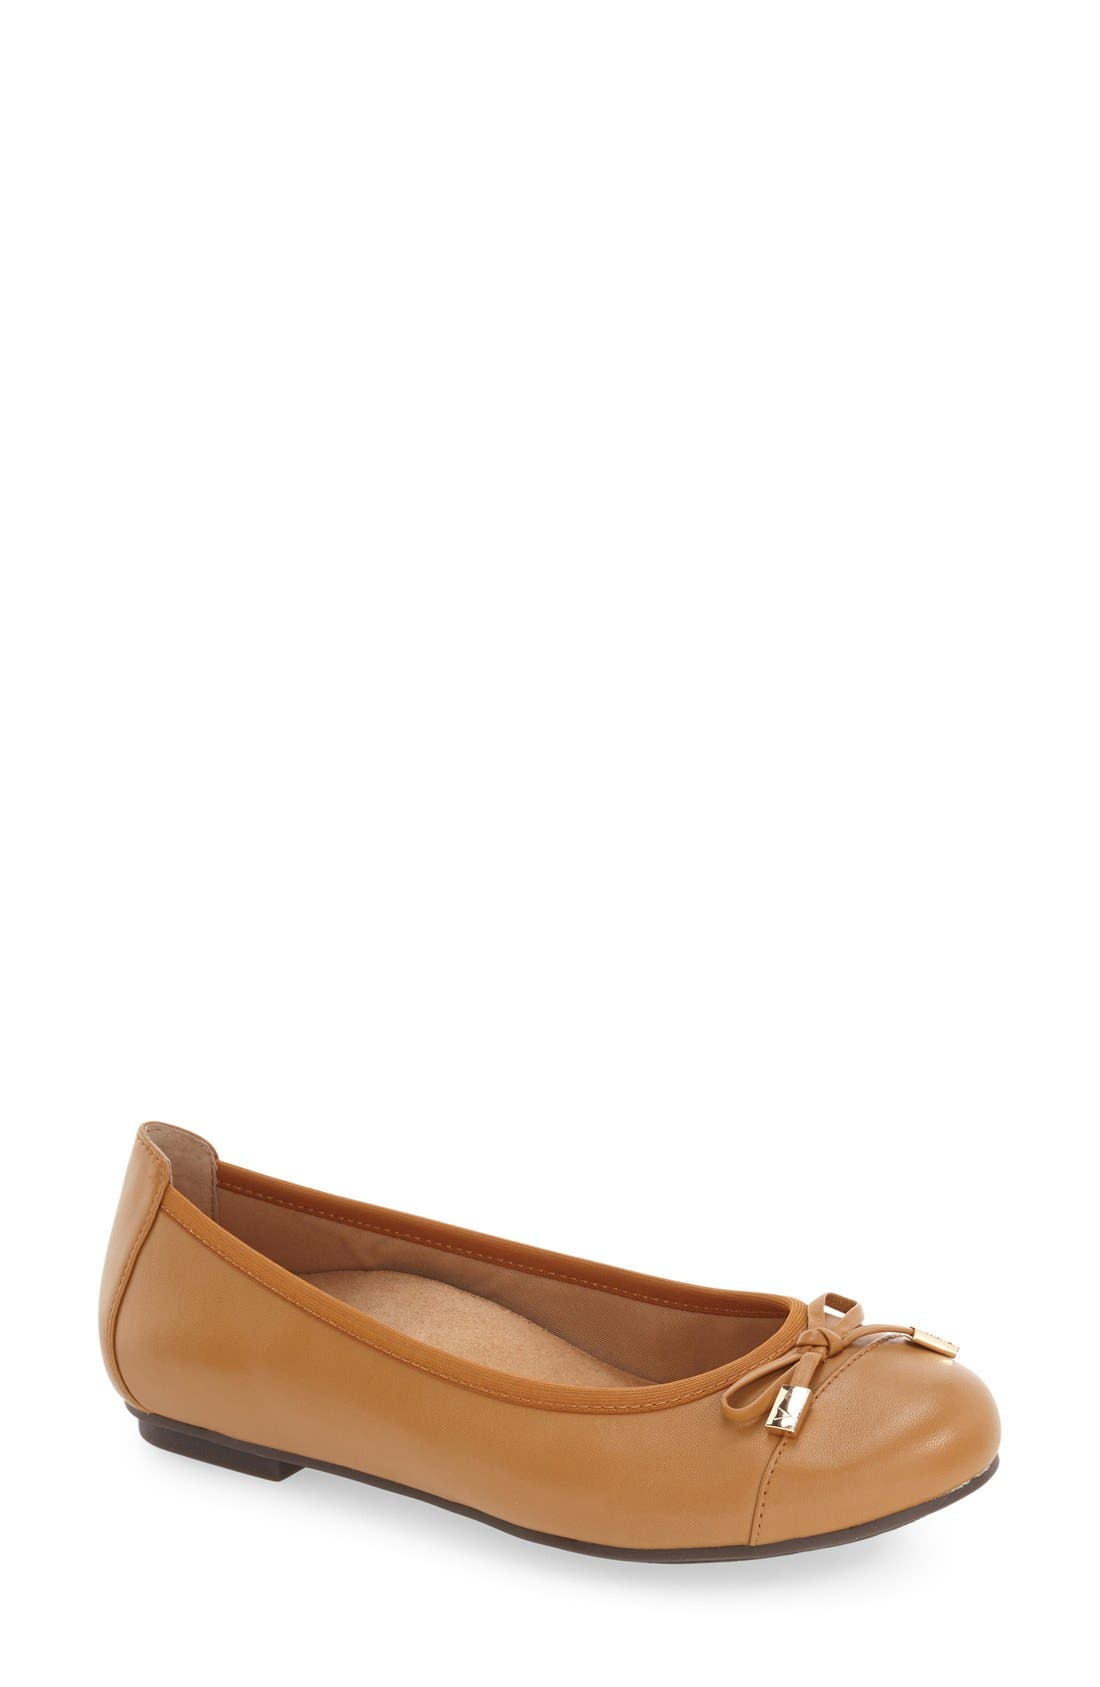 'Minna' Leather Flat,                         Main,                         color, Tan Leather